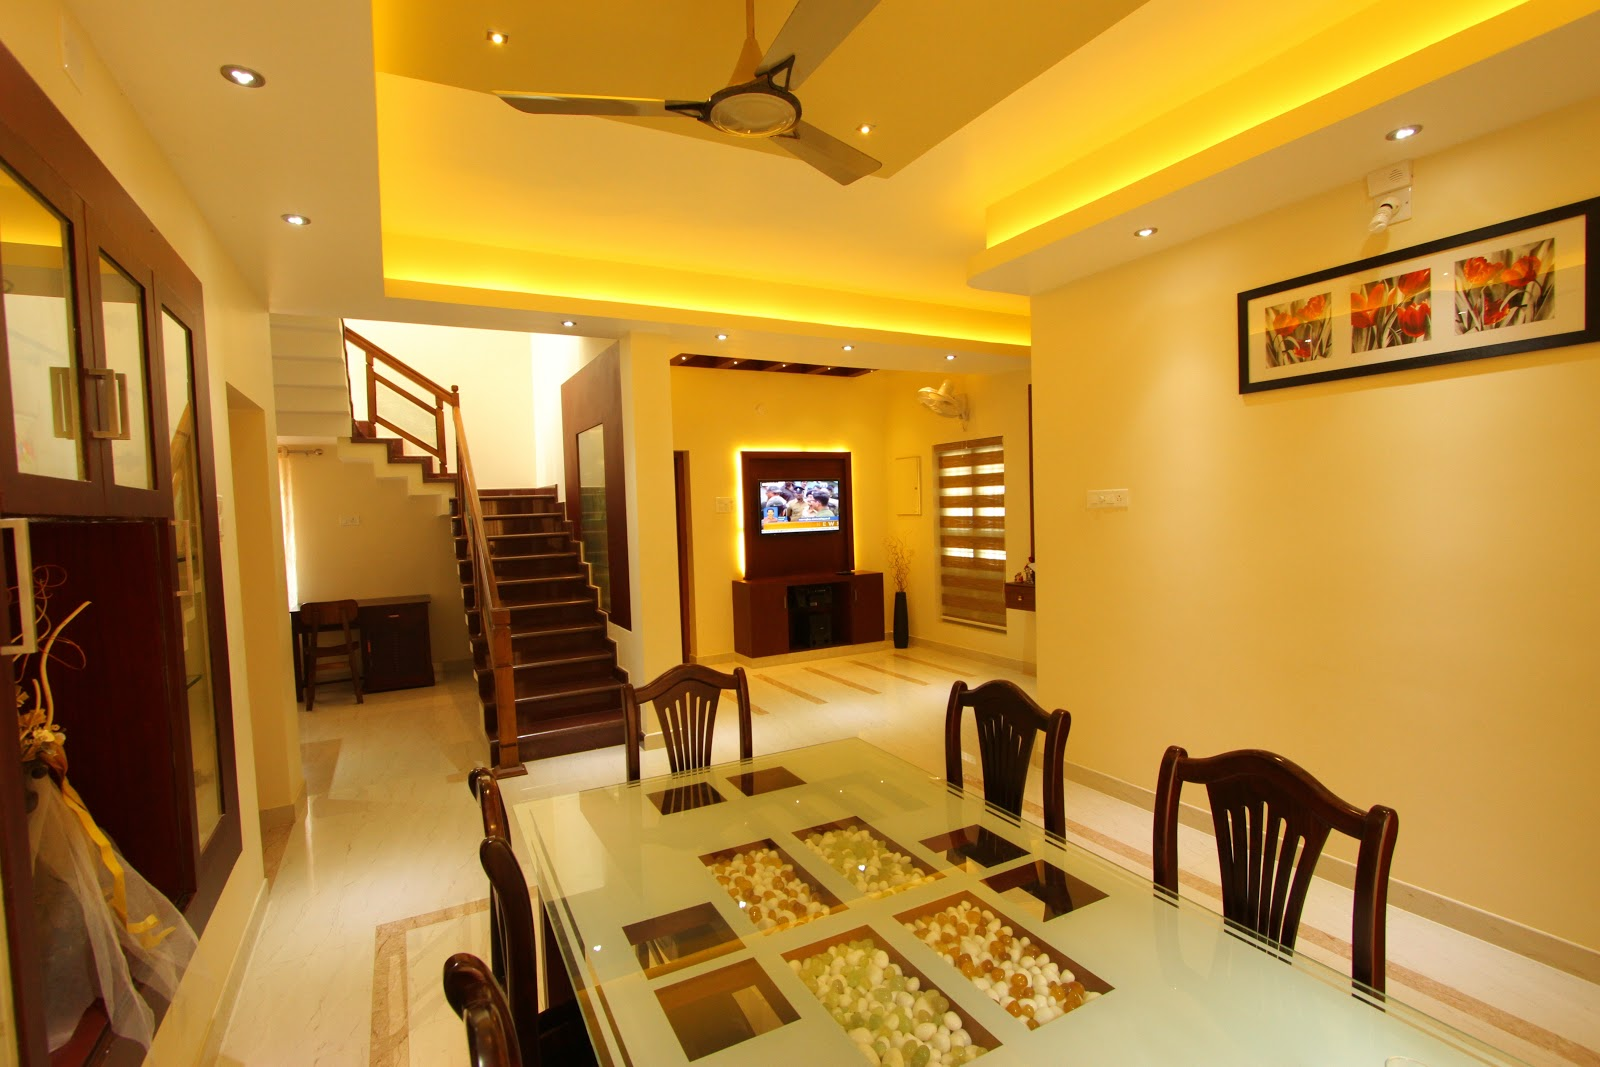 Shilpakala interiors award winning home interior design Images of home interior